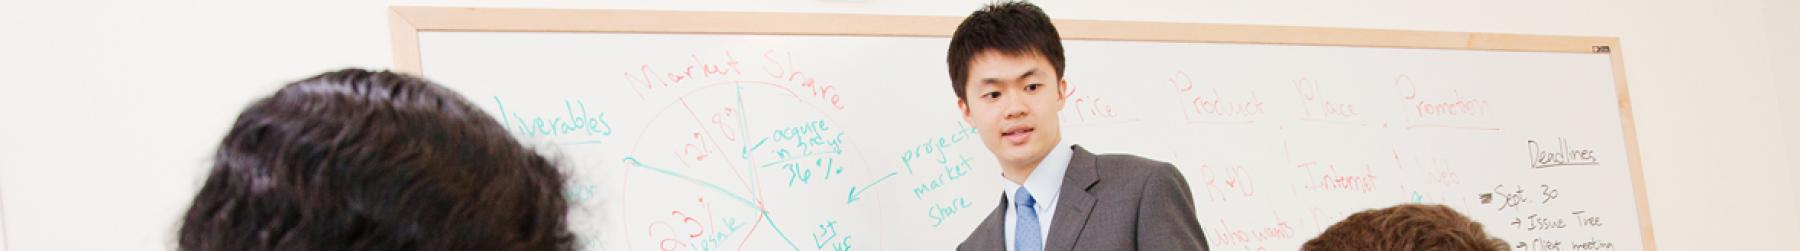 A male student presents his research from a whiteboard in front of his classmates.